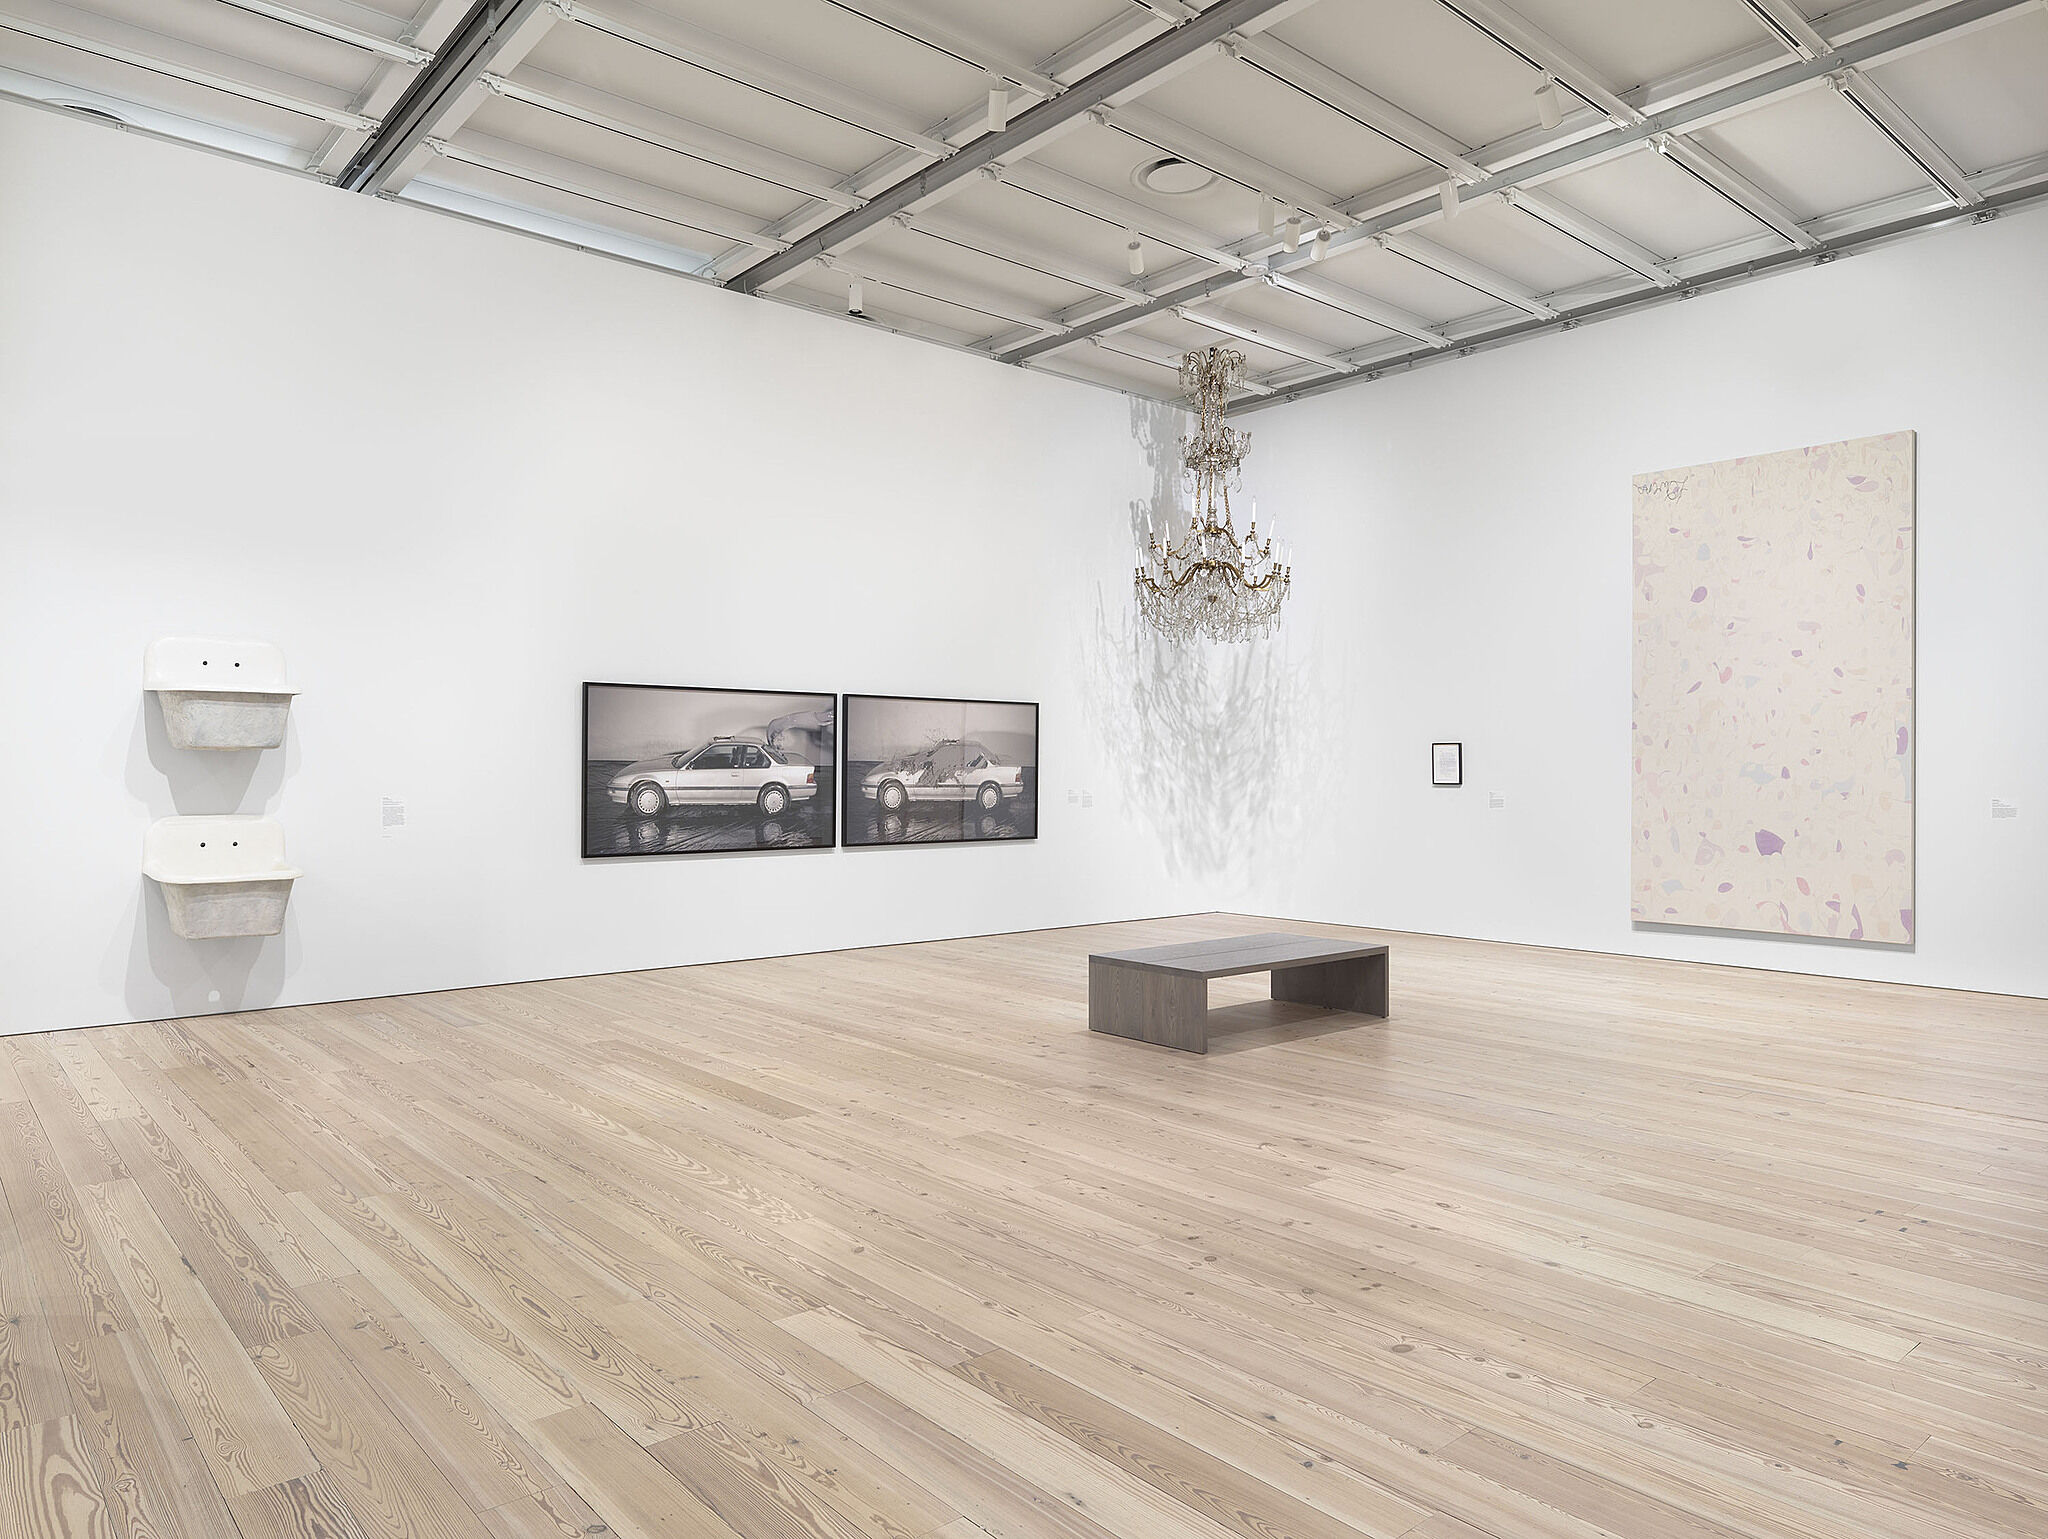 A wide view of a gallery with two sinks, two photos of cars, a hanging sculpture and large-scale painting.